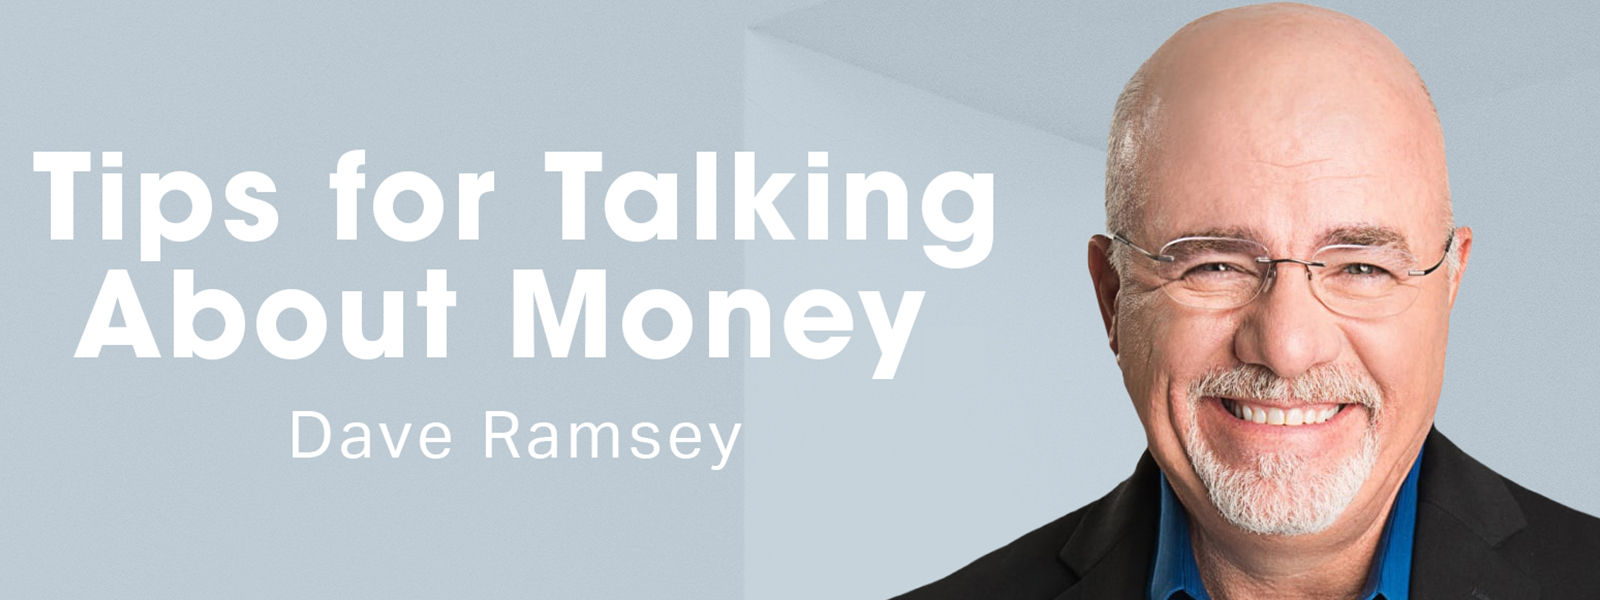 Dave Ramsey's Tips for Talking About Money